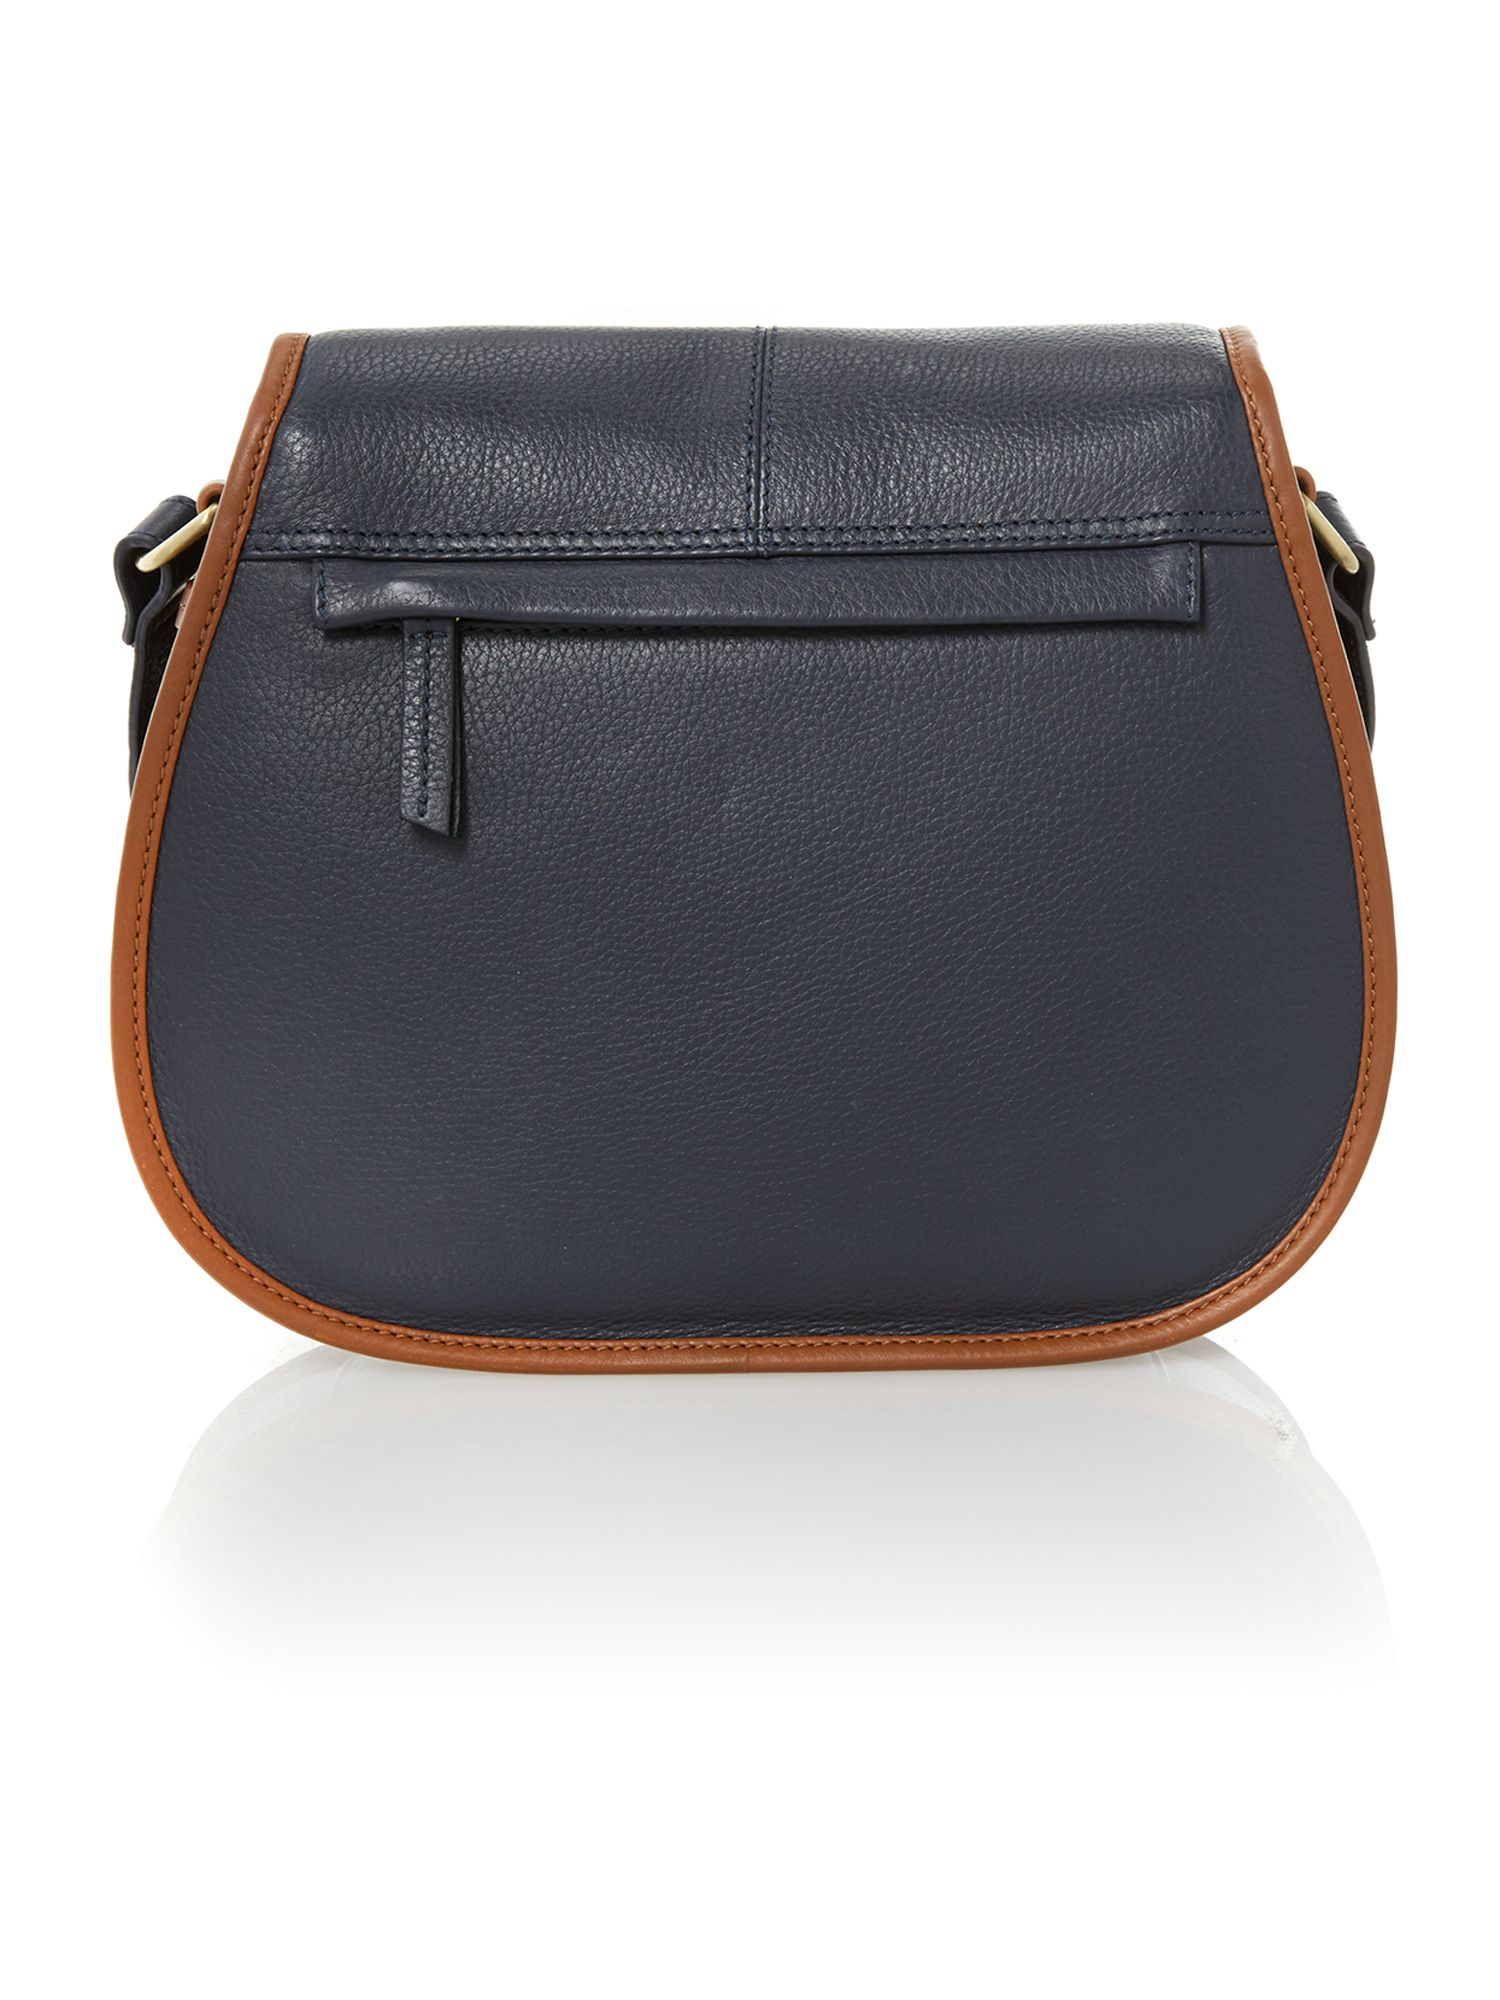 Billy saddle bag